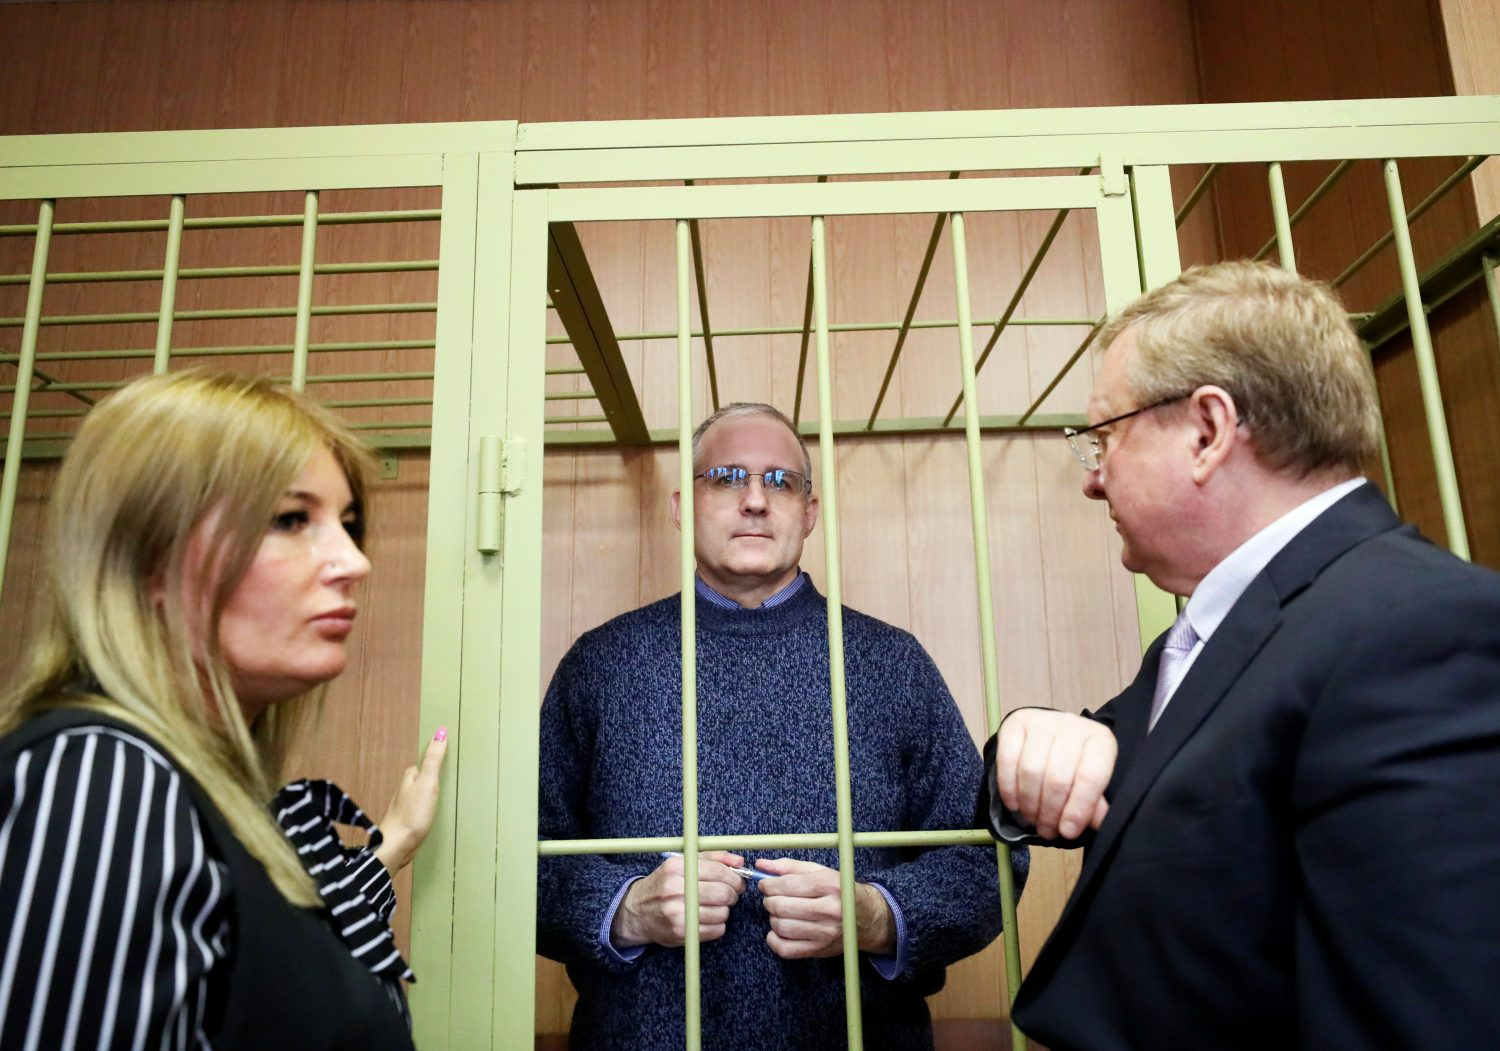 Former U.S. marine Paul Whelan who is being held on suspicion of spying talks with his lawyers Vladimir Zherebenkov and Olga Kralova, as he stands in the courtroom cage after a ruling regarding extension of his detention, in Moscow, Russia, February 22, 2019. REUTERS/Shamil Zhumatov